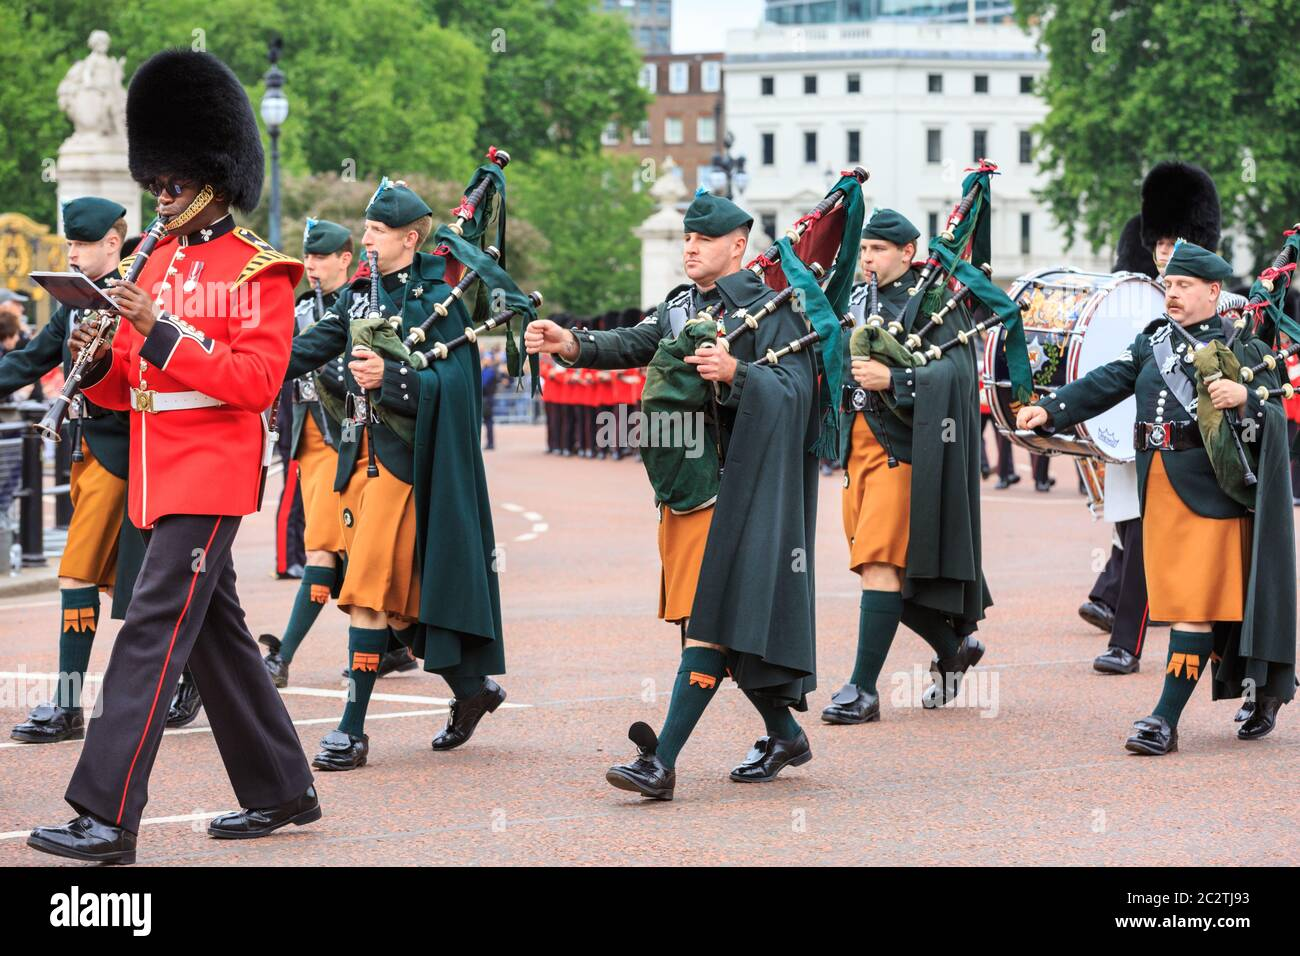 The Regimental Band and Pipers of the Irish Guards marcj at The Colonel's Review ahead of Trooping the Colour in London, England Stock Photo